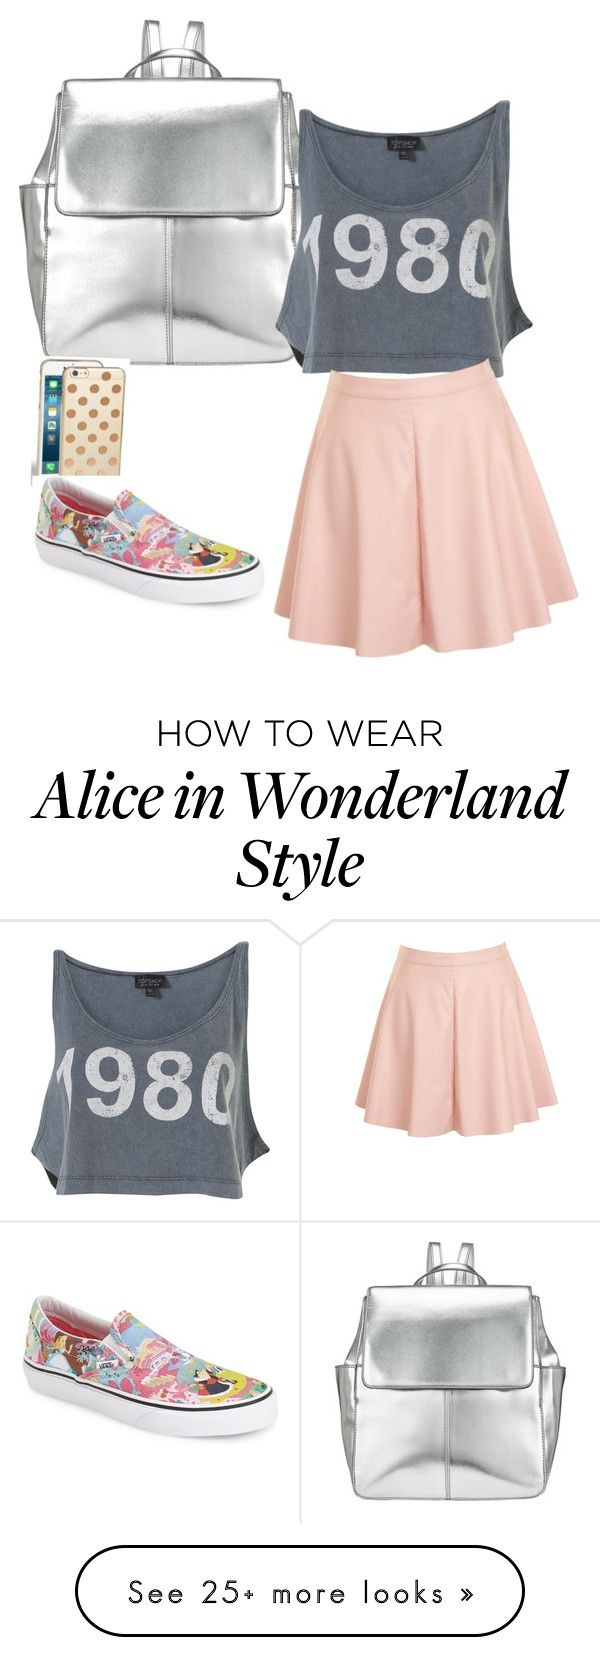 """shopping outfit"" by jameeclements on Polyvore featuring Kin by John Lewis, Glamorous, Kate Spade and Vans"